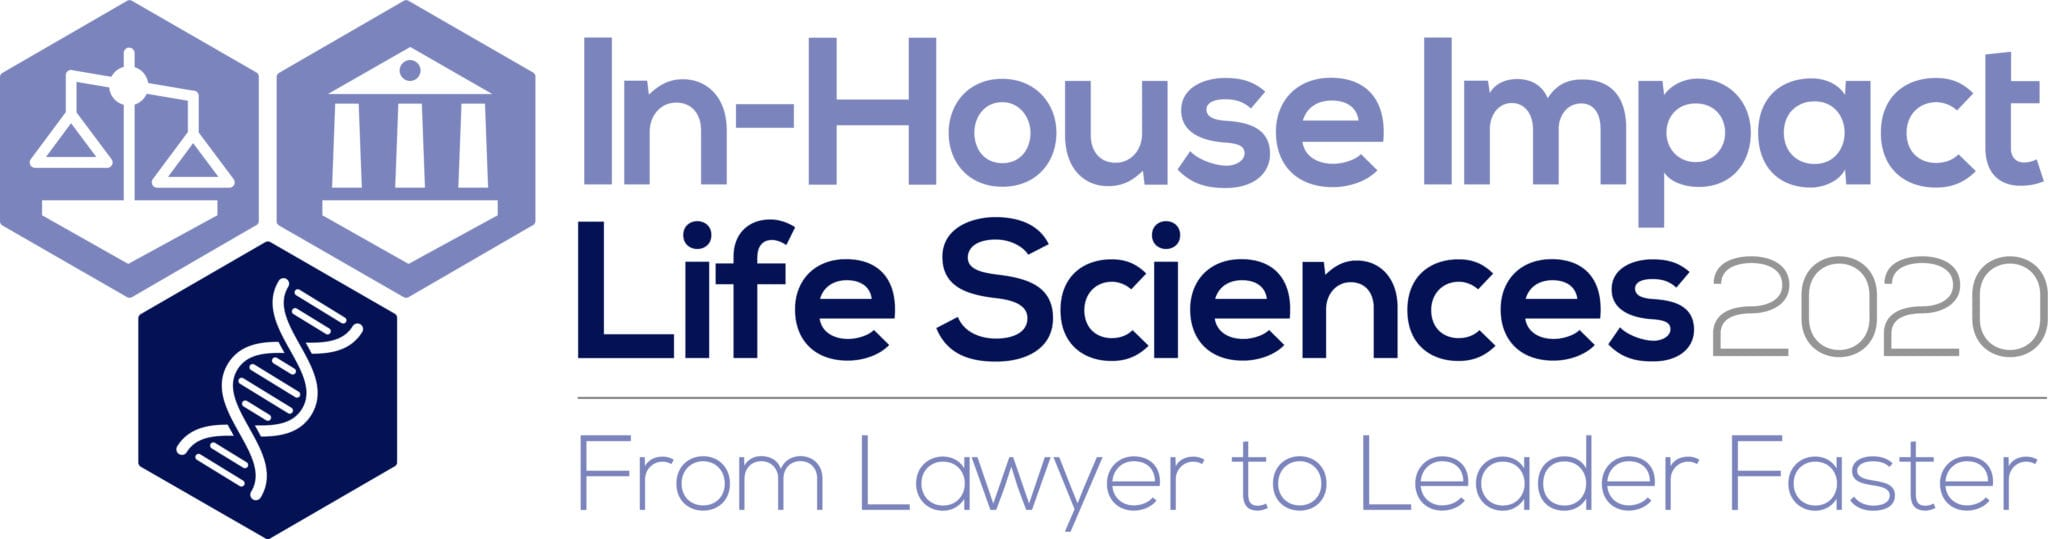 HW200129 17493 - In-House Impact Life Sciences 2020 logo